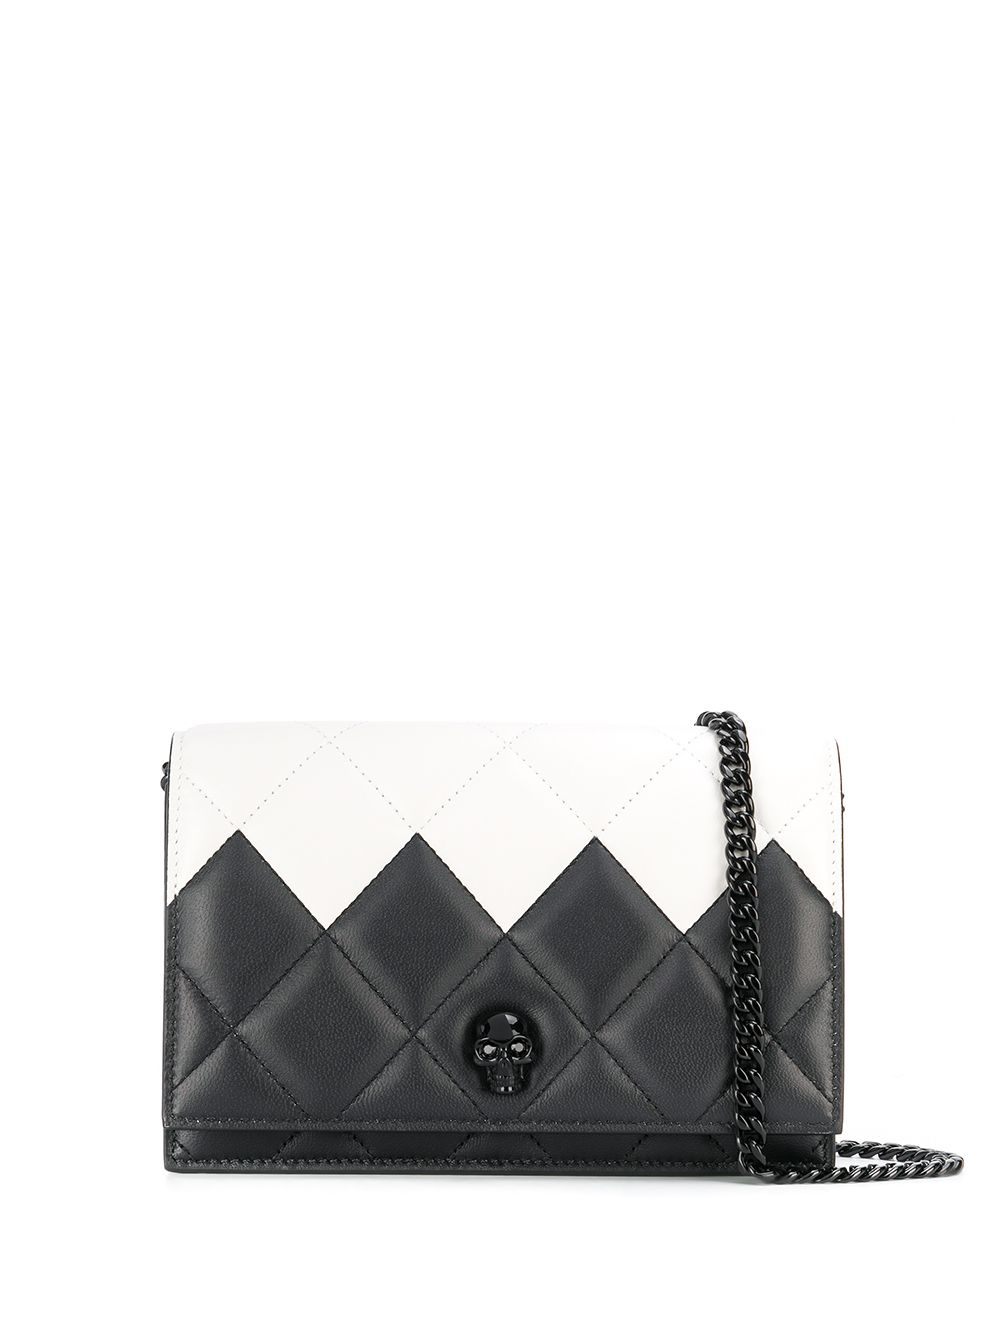 Skull Small Leather Bag